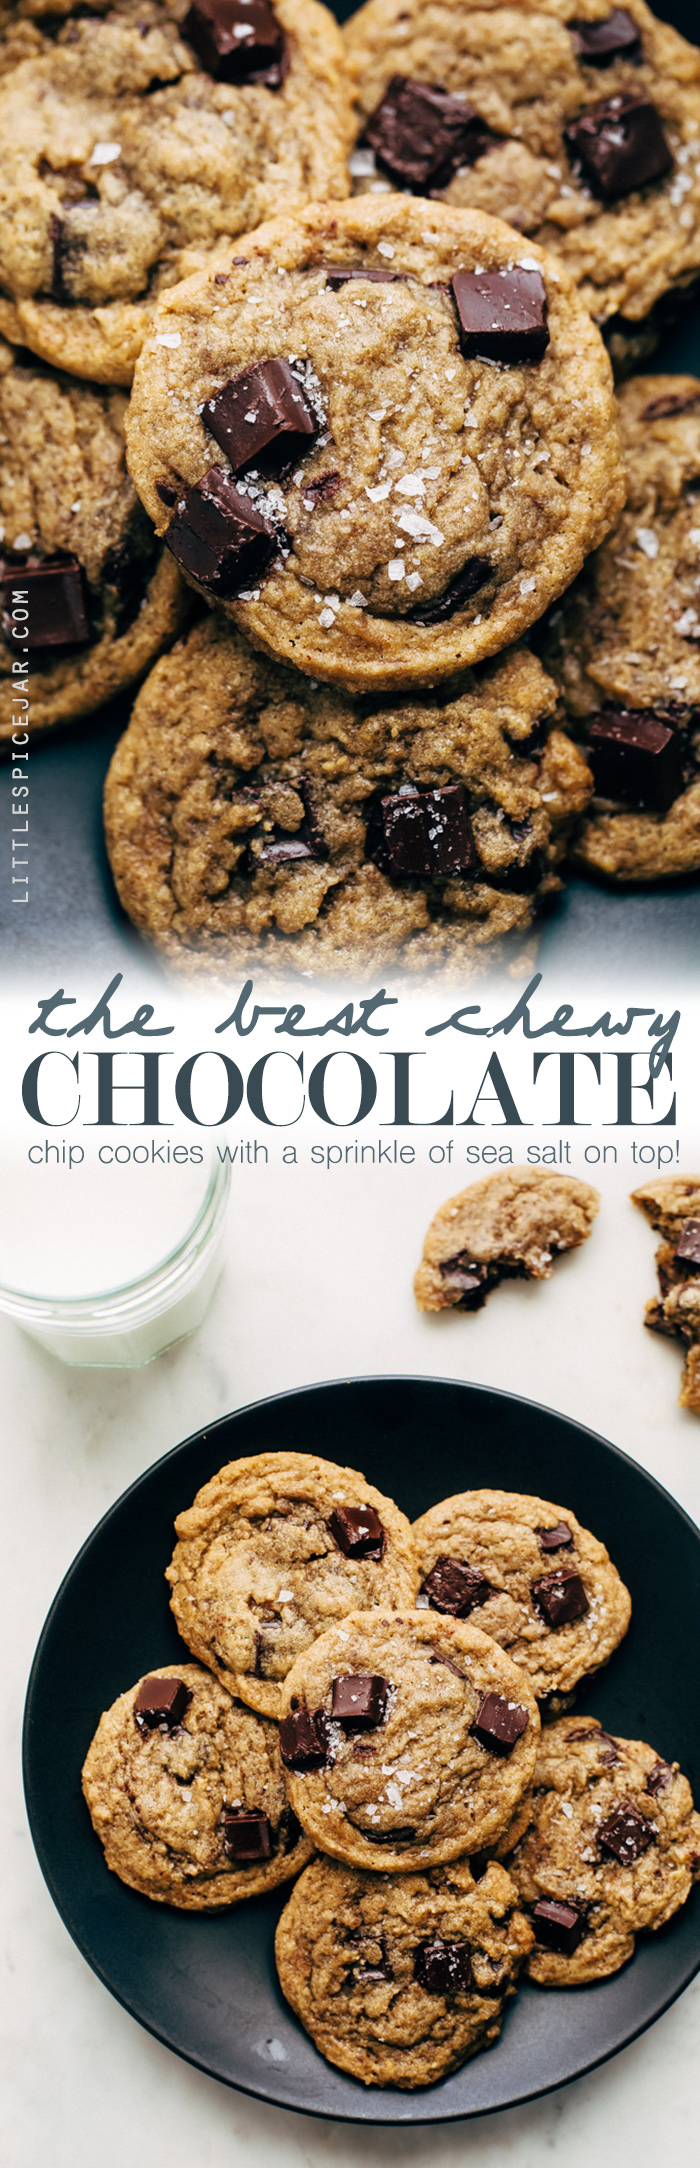 The Best Chewy Chocolate Chip Cookies Recipe | Little Spice Jar